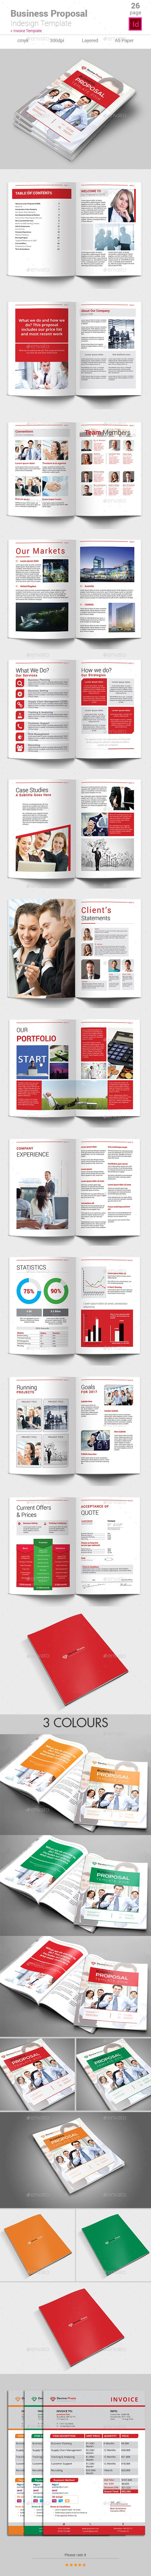 Business Proposal Indesign Template | Pinterest